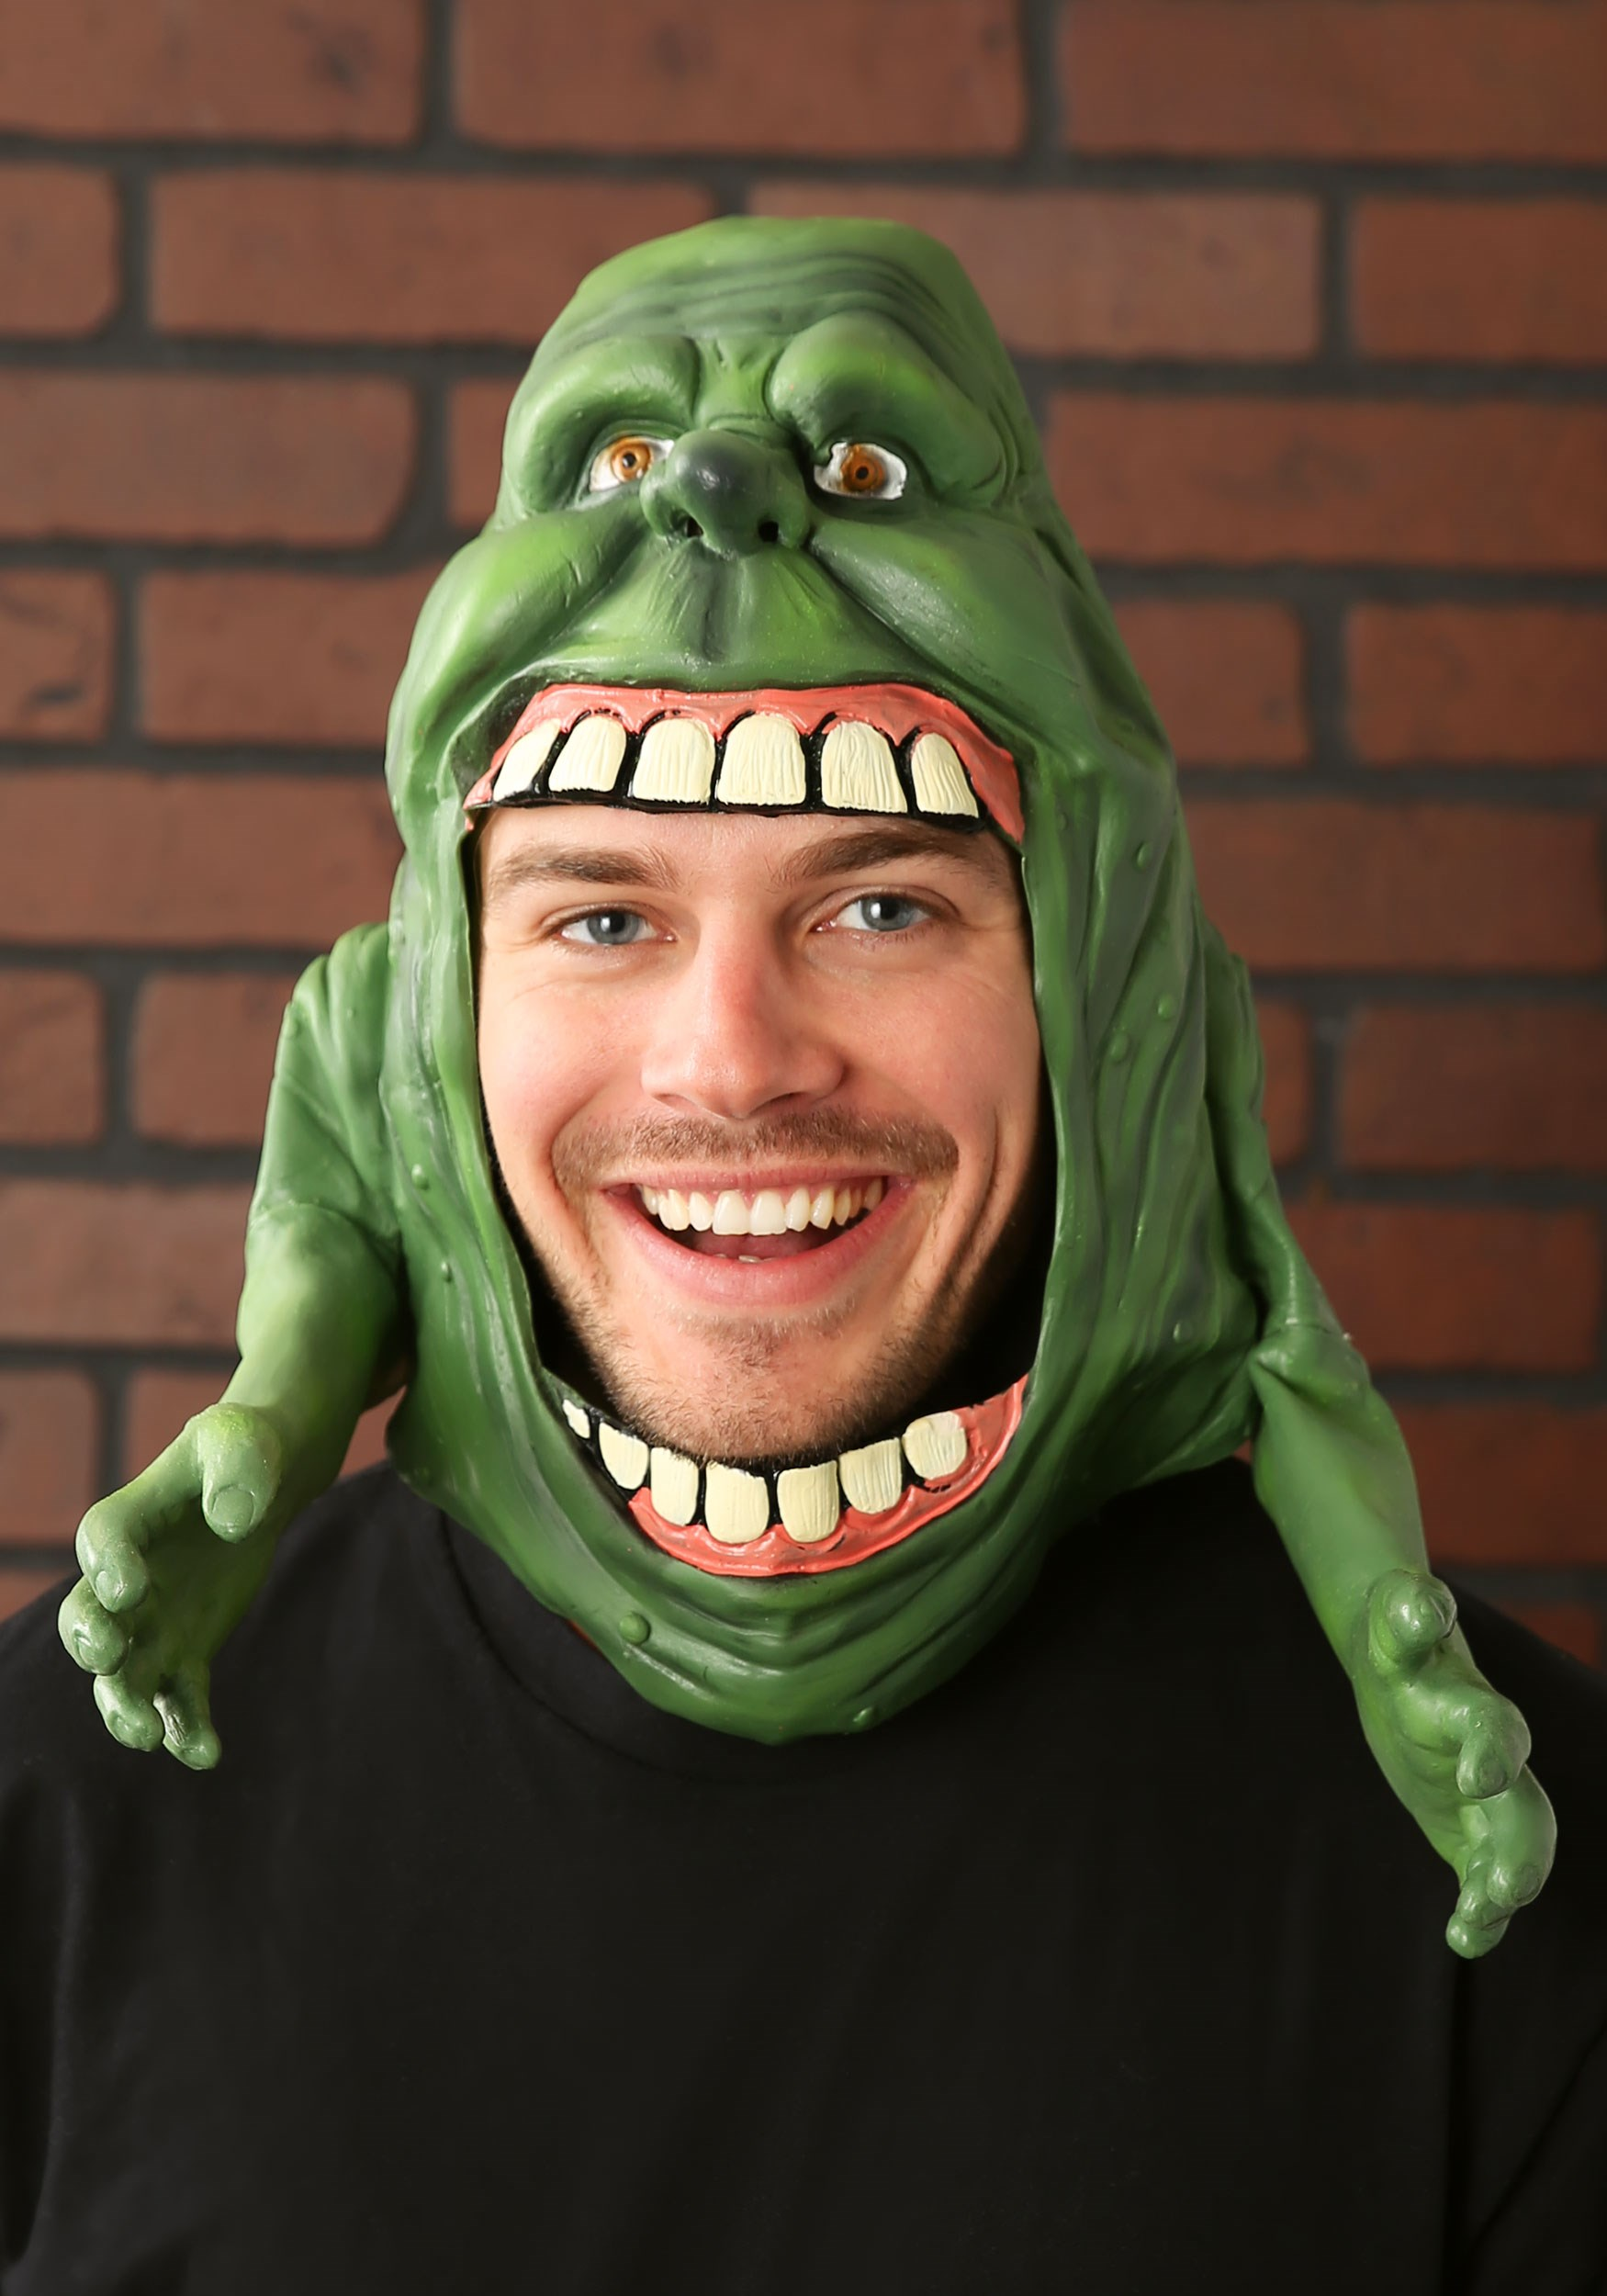 sc 1 st  Halloween Costumes : slimer kids costume  - Germanpascual.Com